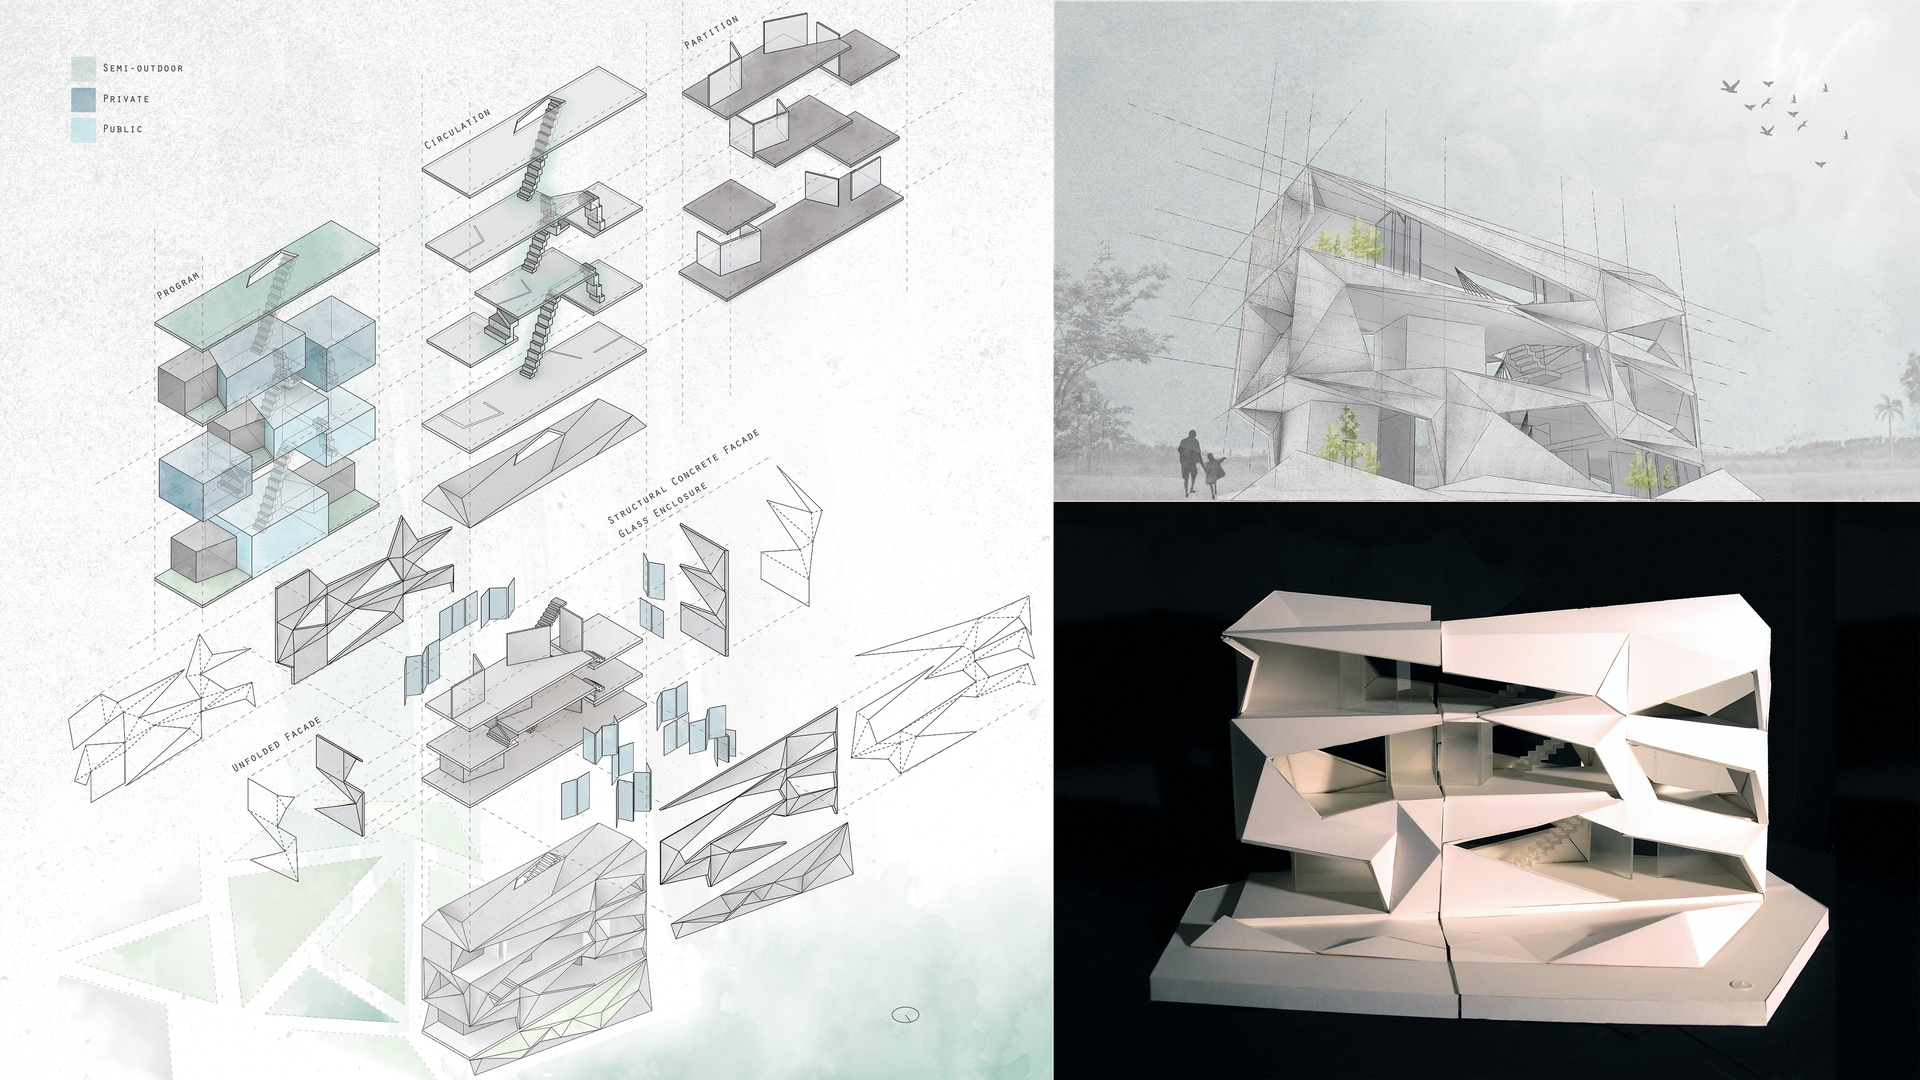 Enlarge Photo: Ideas for the Village: Rethinking Village House typologies in Hong Kong 1